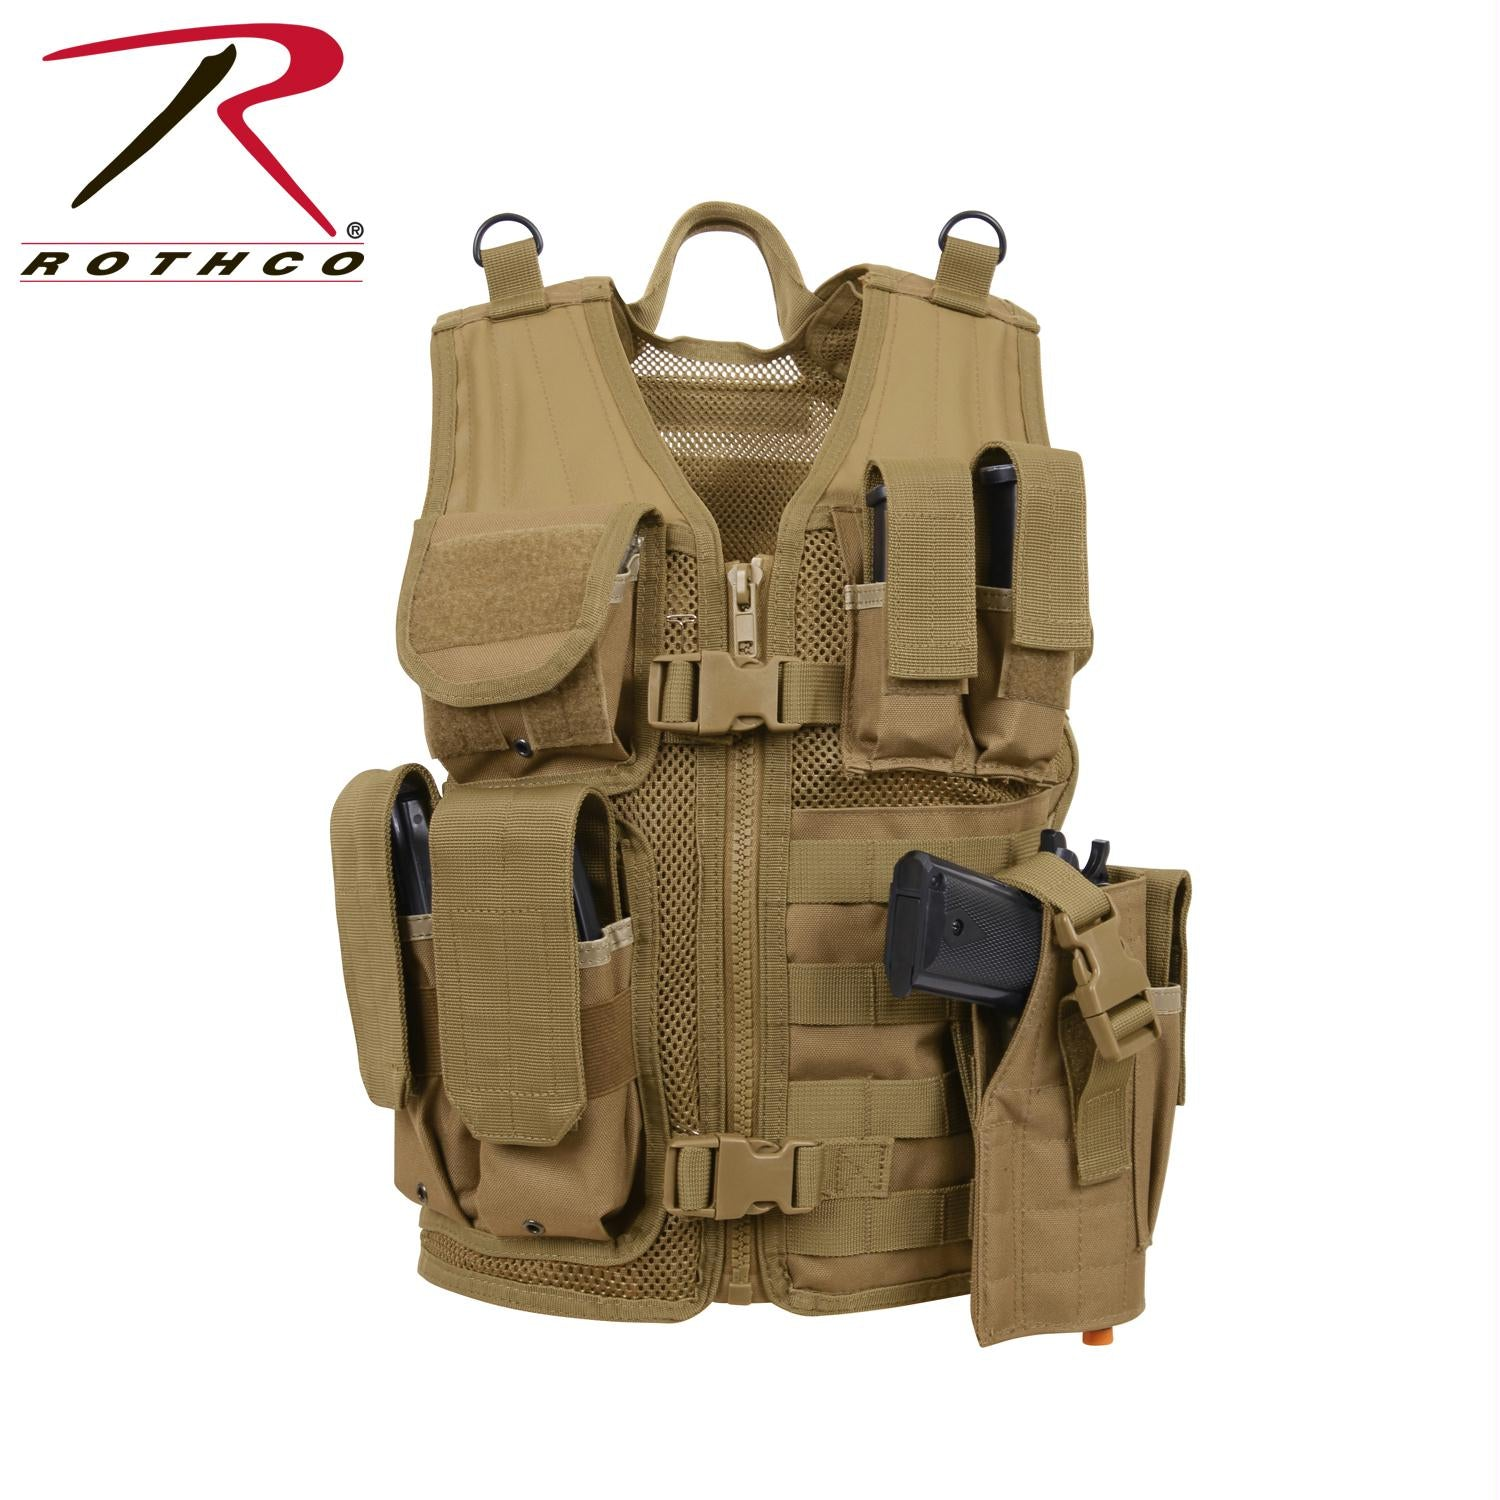 Rothco Kid's Tactical Cross Draw Vest - Coyote Brown